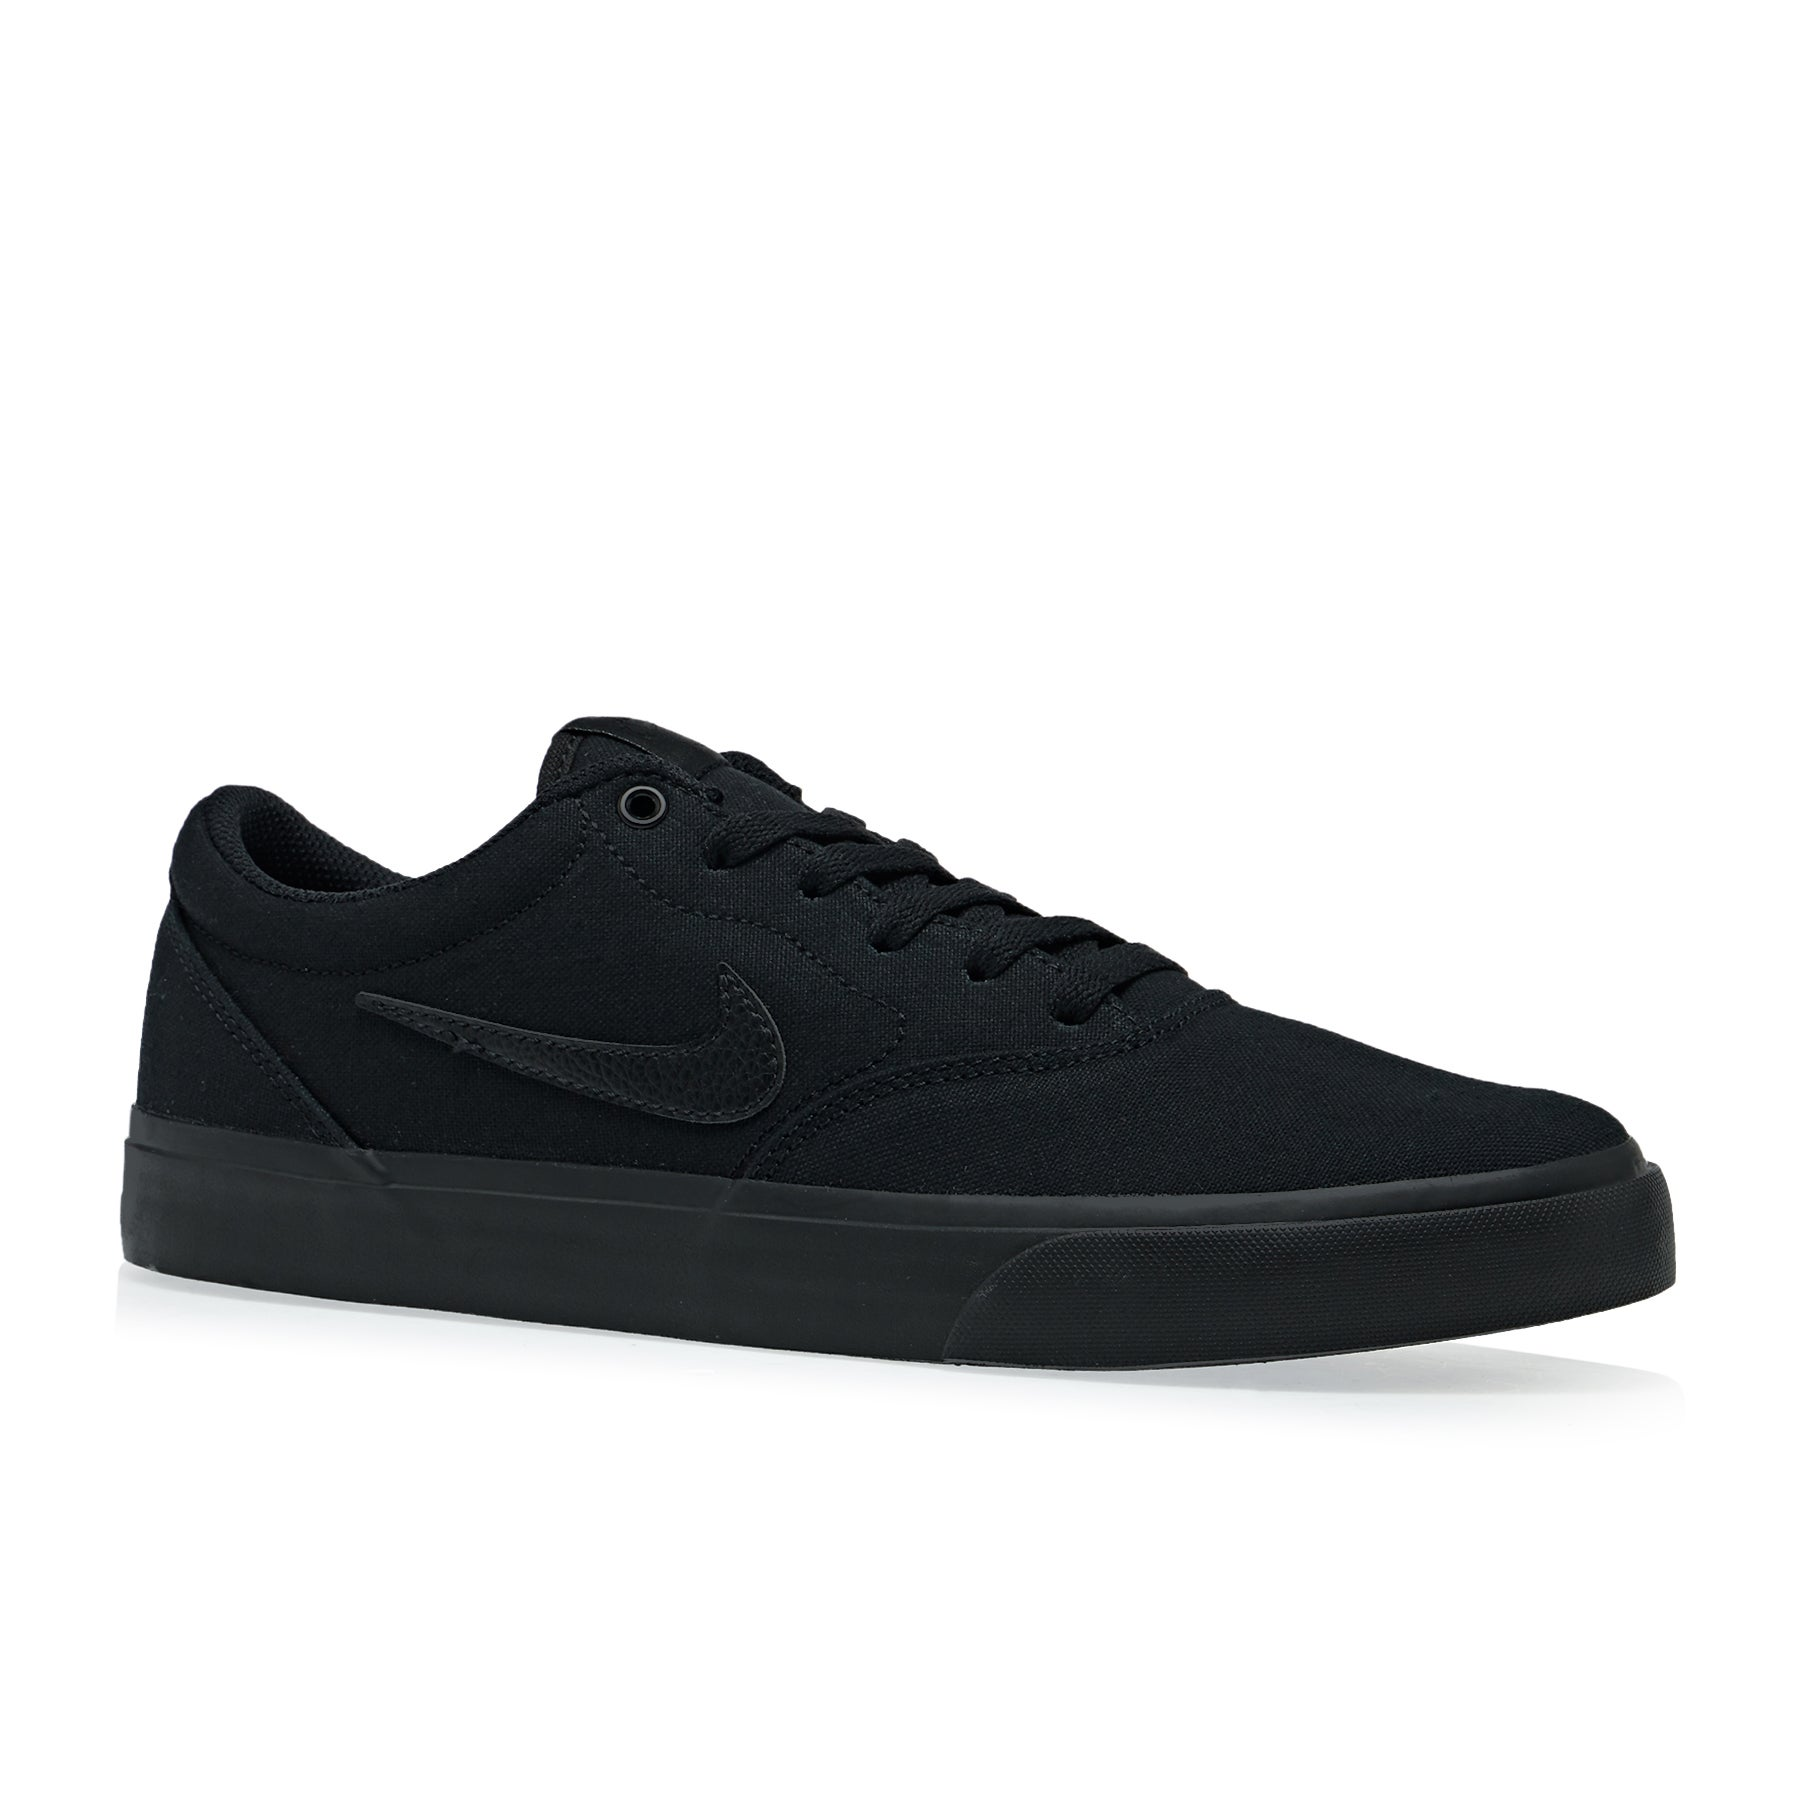 3750a45926f8 Nike SB Charge Slr Shoes available from Surfdome